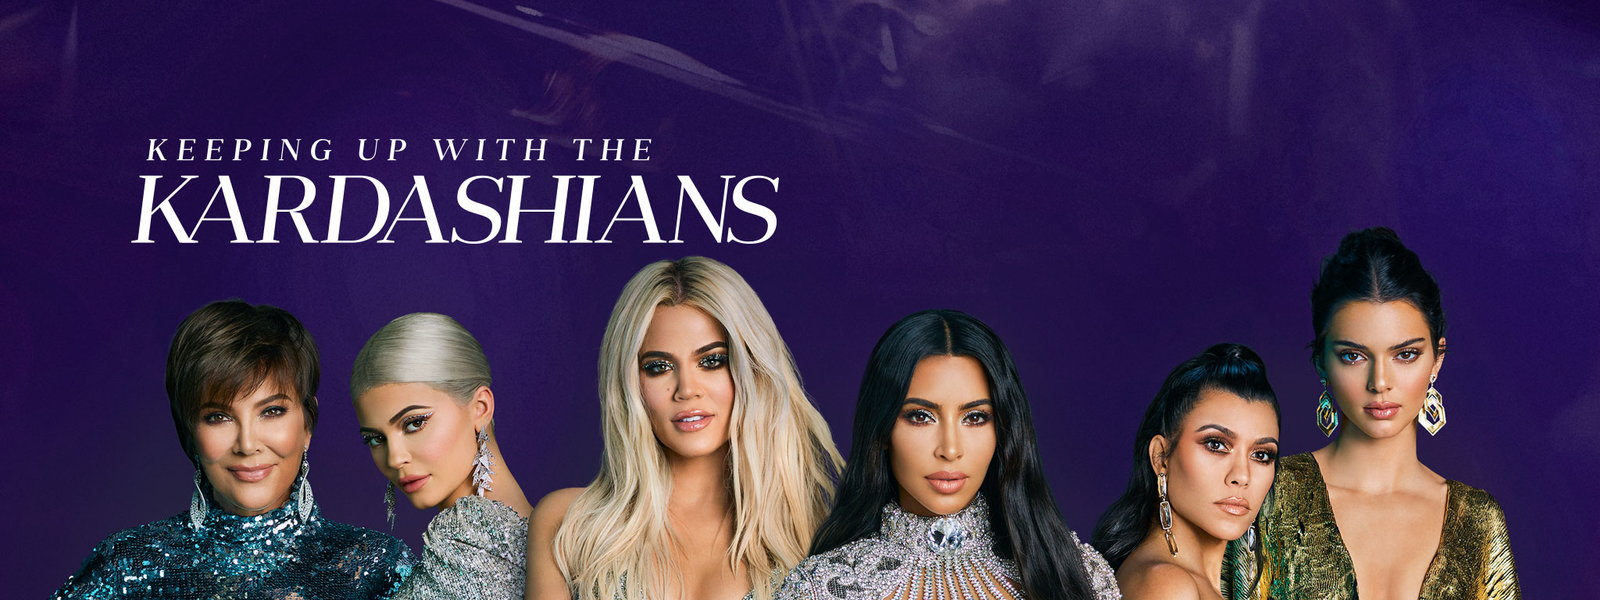 Keeping Up With The Kardashians Episodes